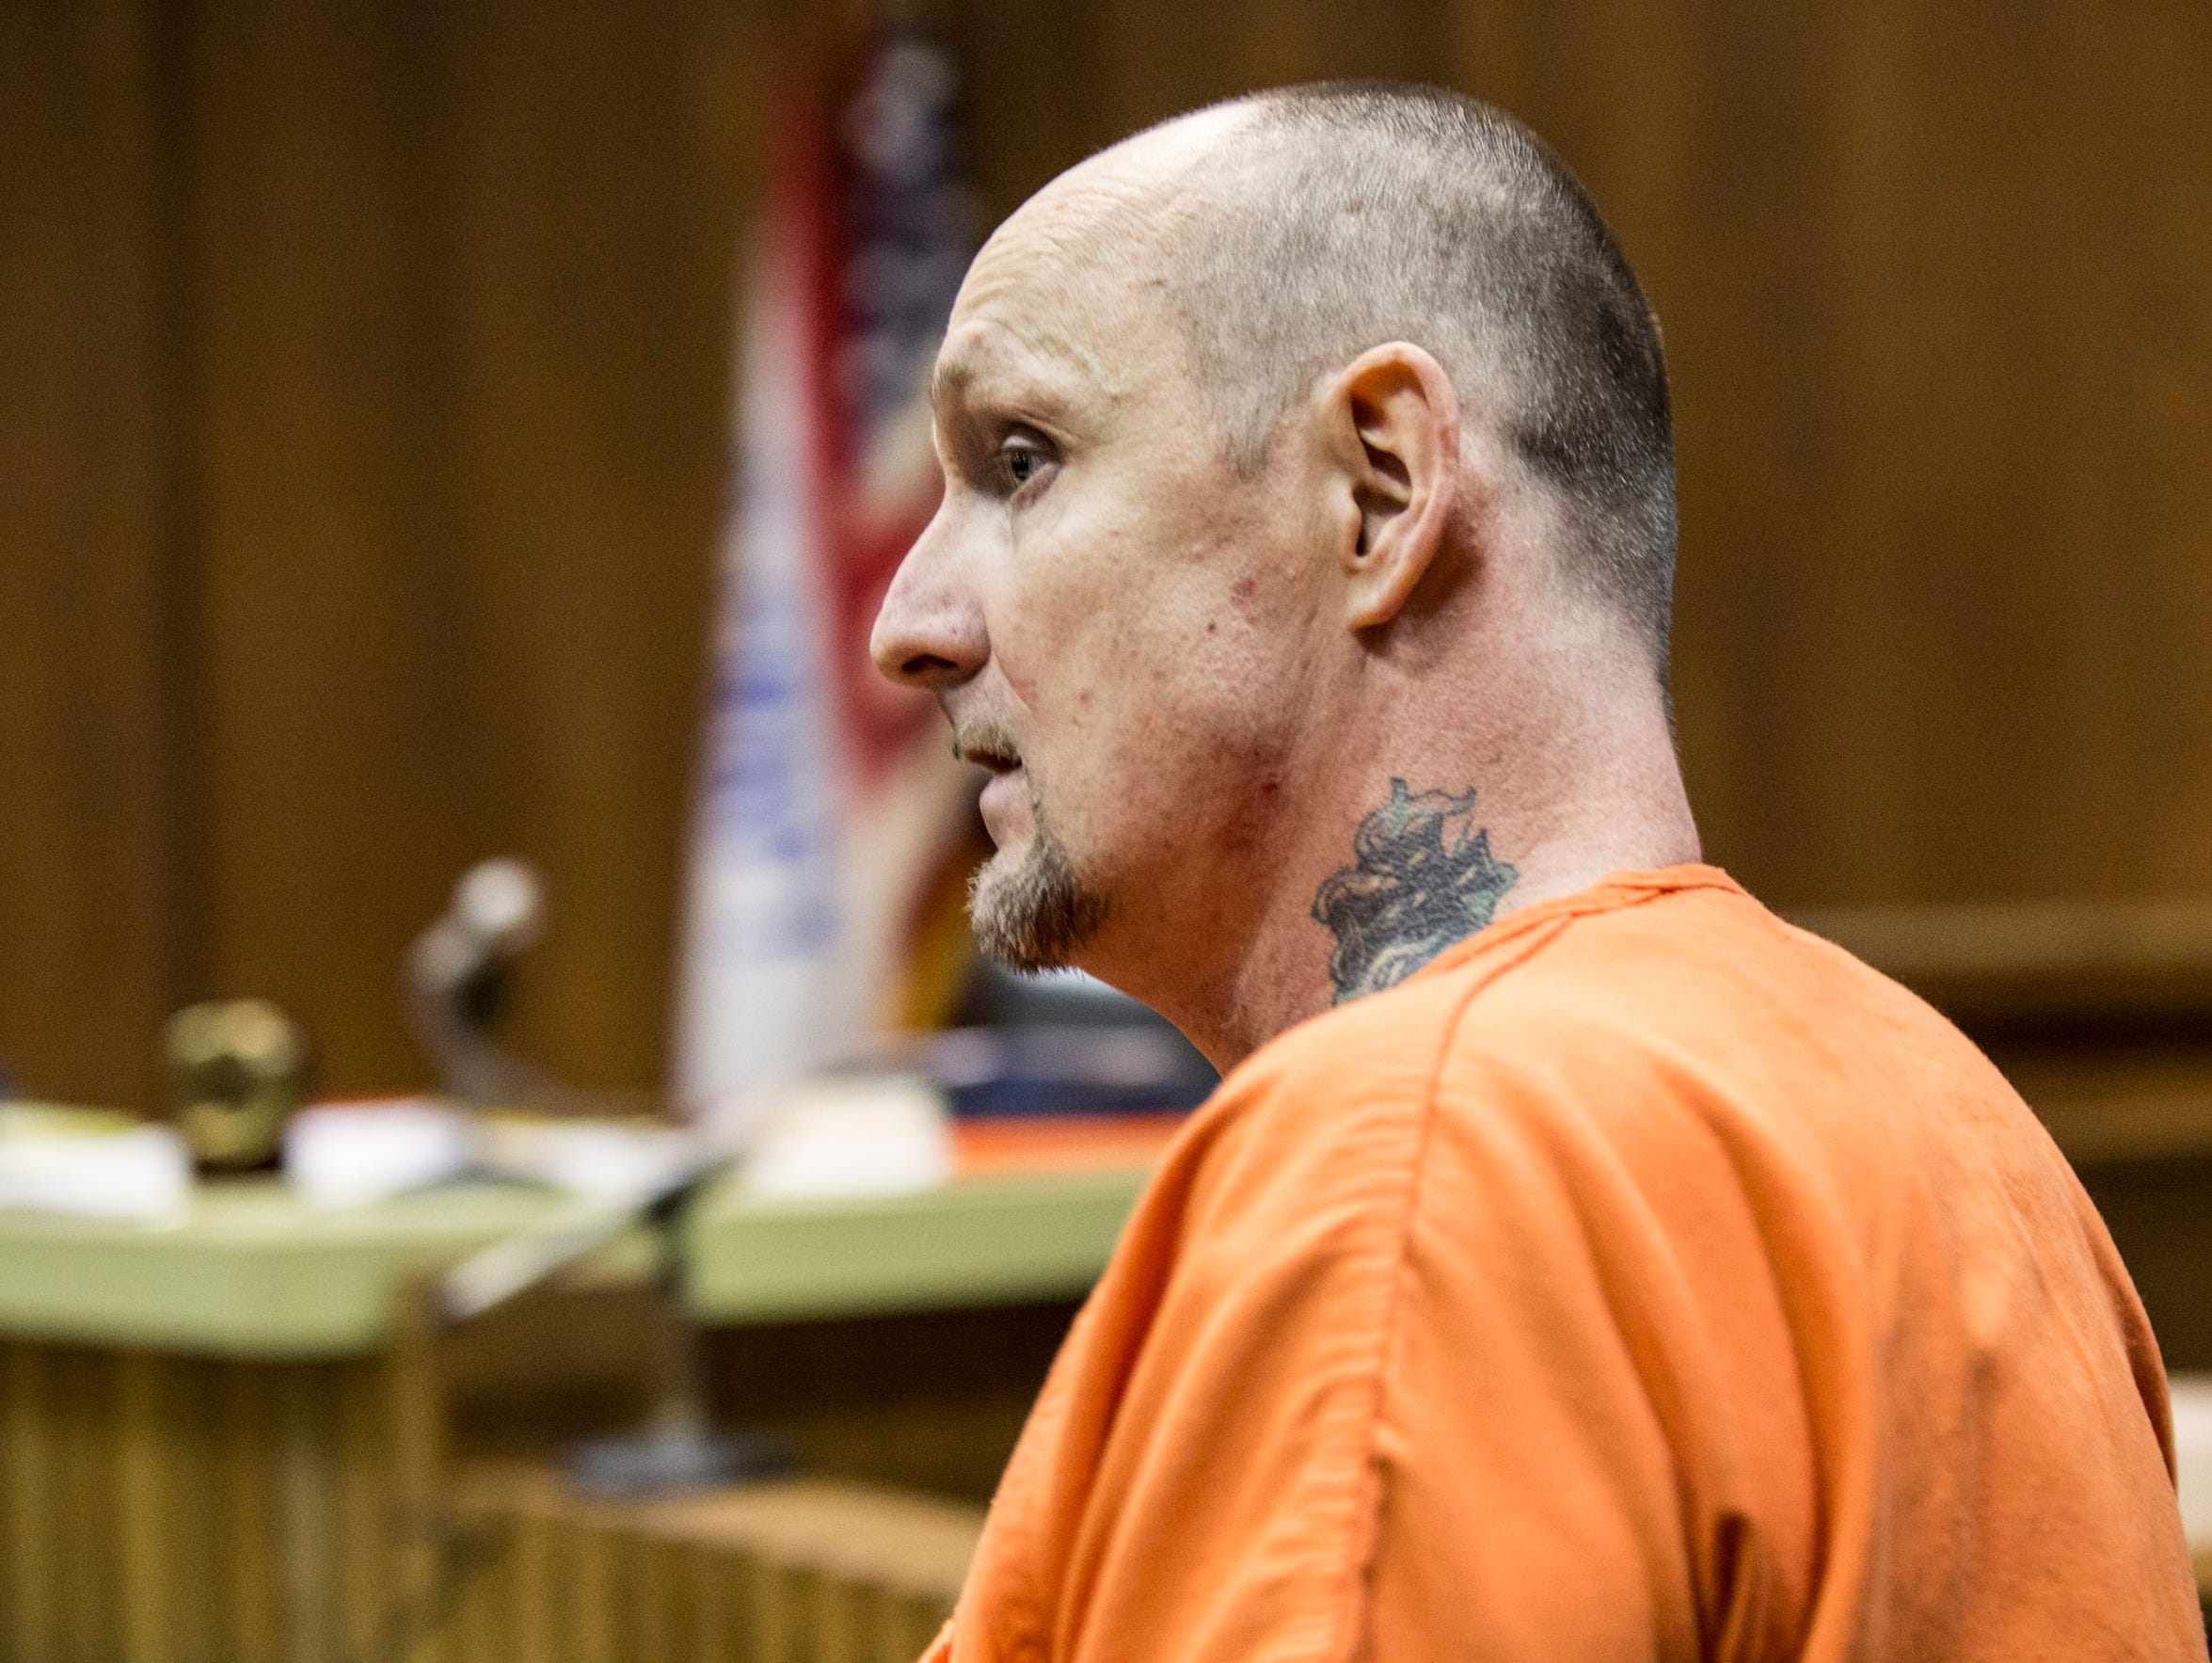 Garry Cordell, 47, during a court appearance on Monday,